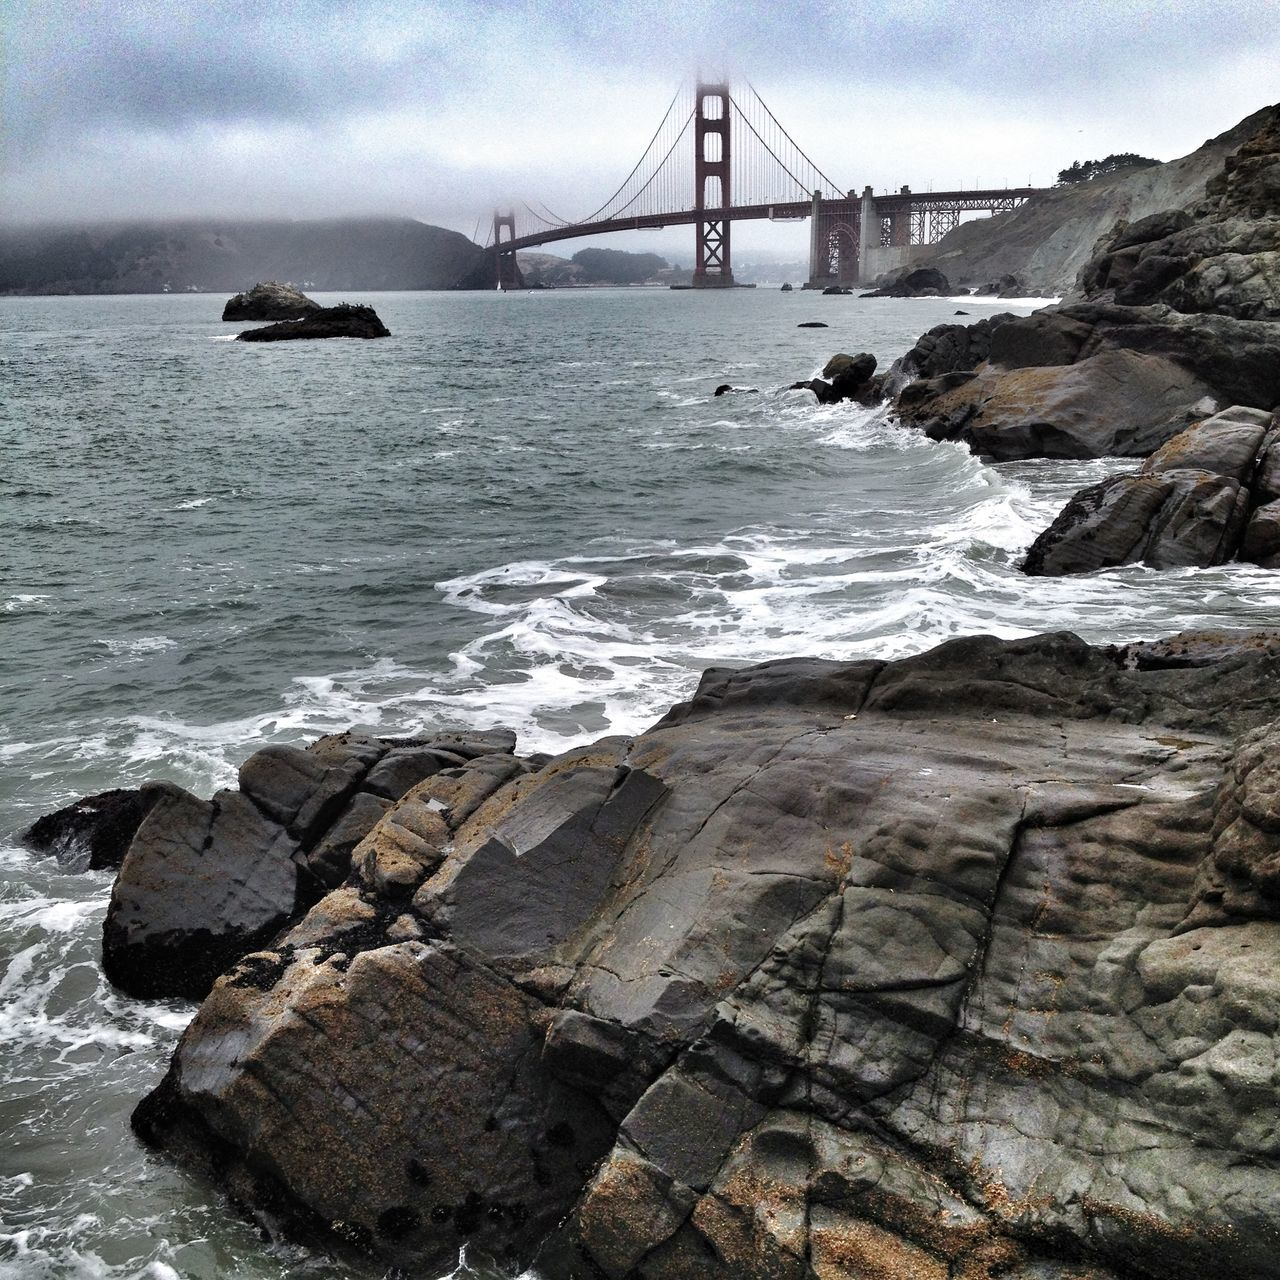 suspension bridge, bridge - man made structure, engineering, connection, travel destinations, tourism, architecture, travel, sea, bridge, water, transportation, built structure, outdoors, sky, rock - object, nature, no people, day, city, beauty in nature